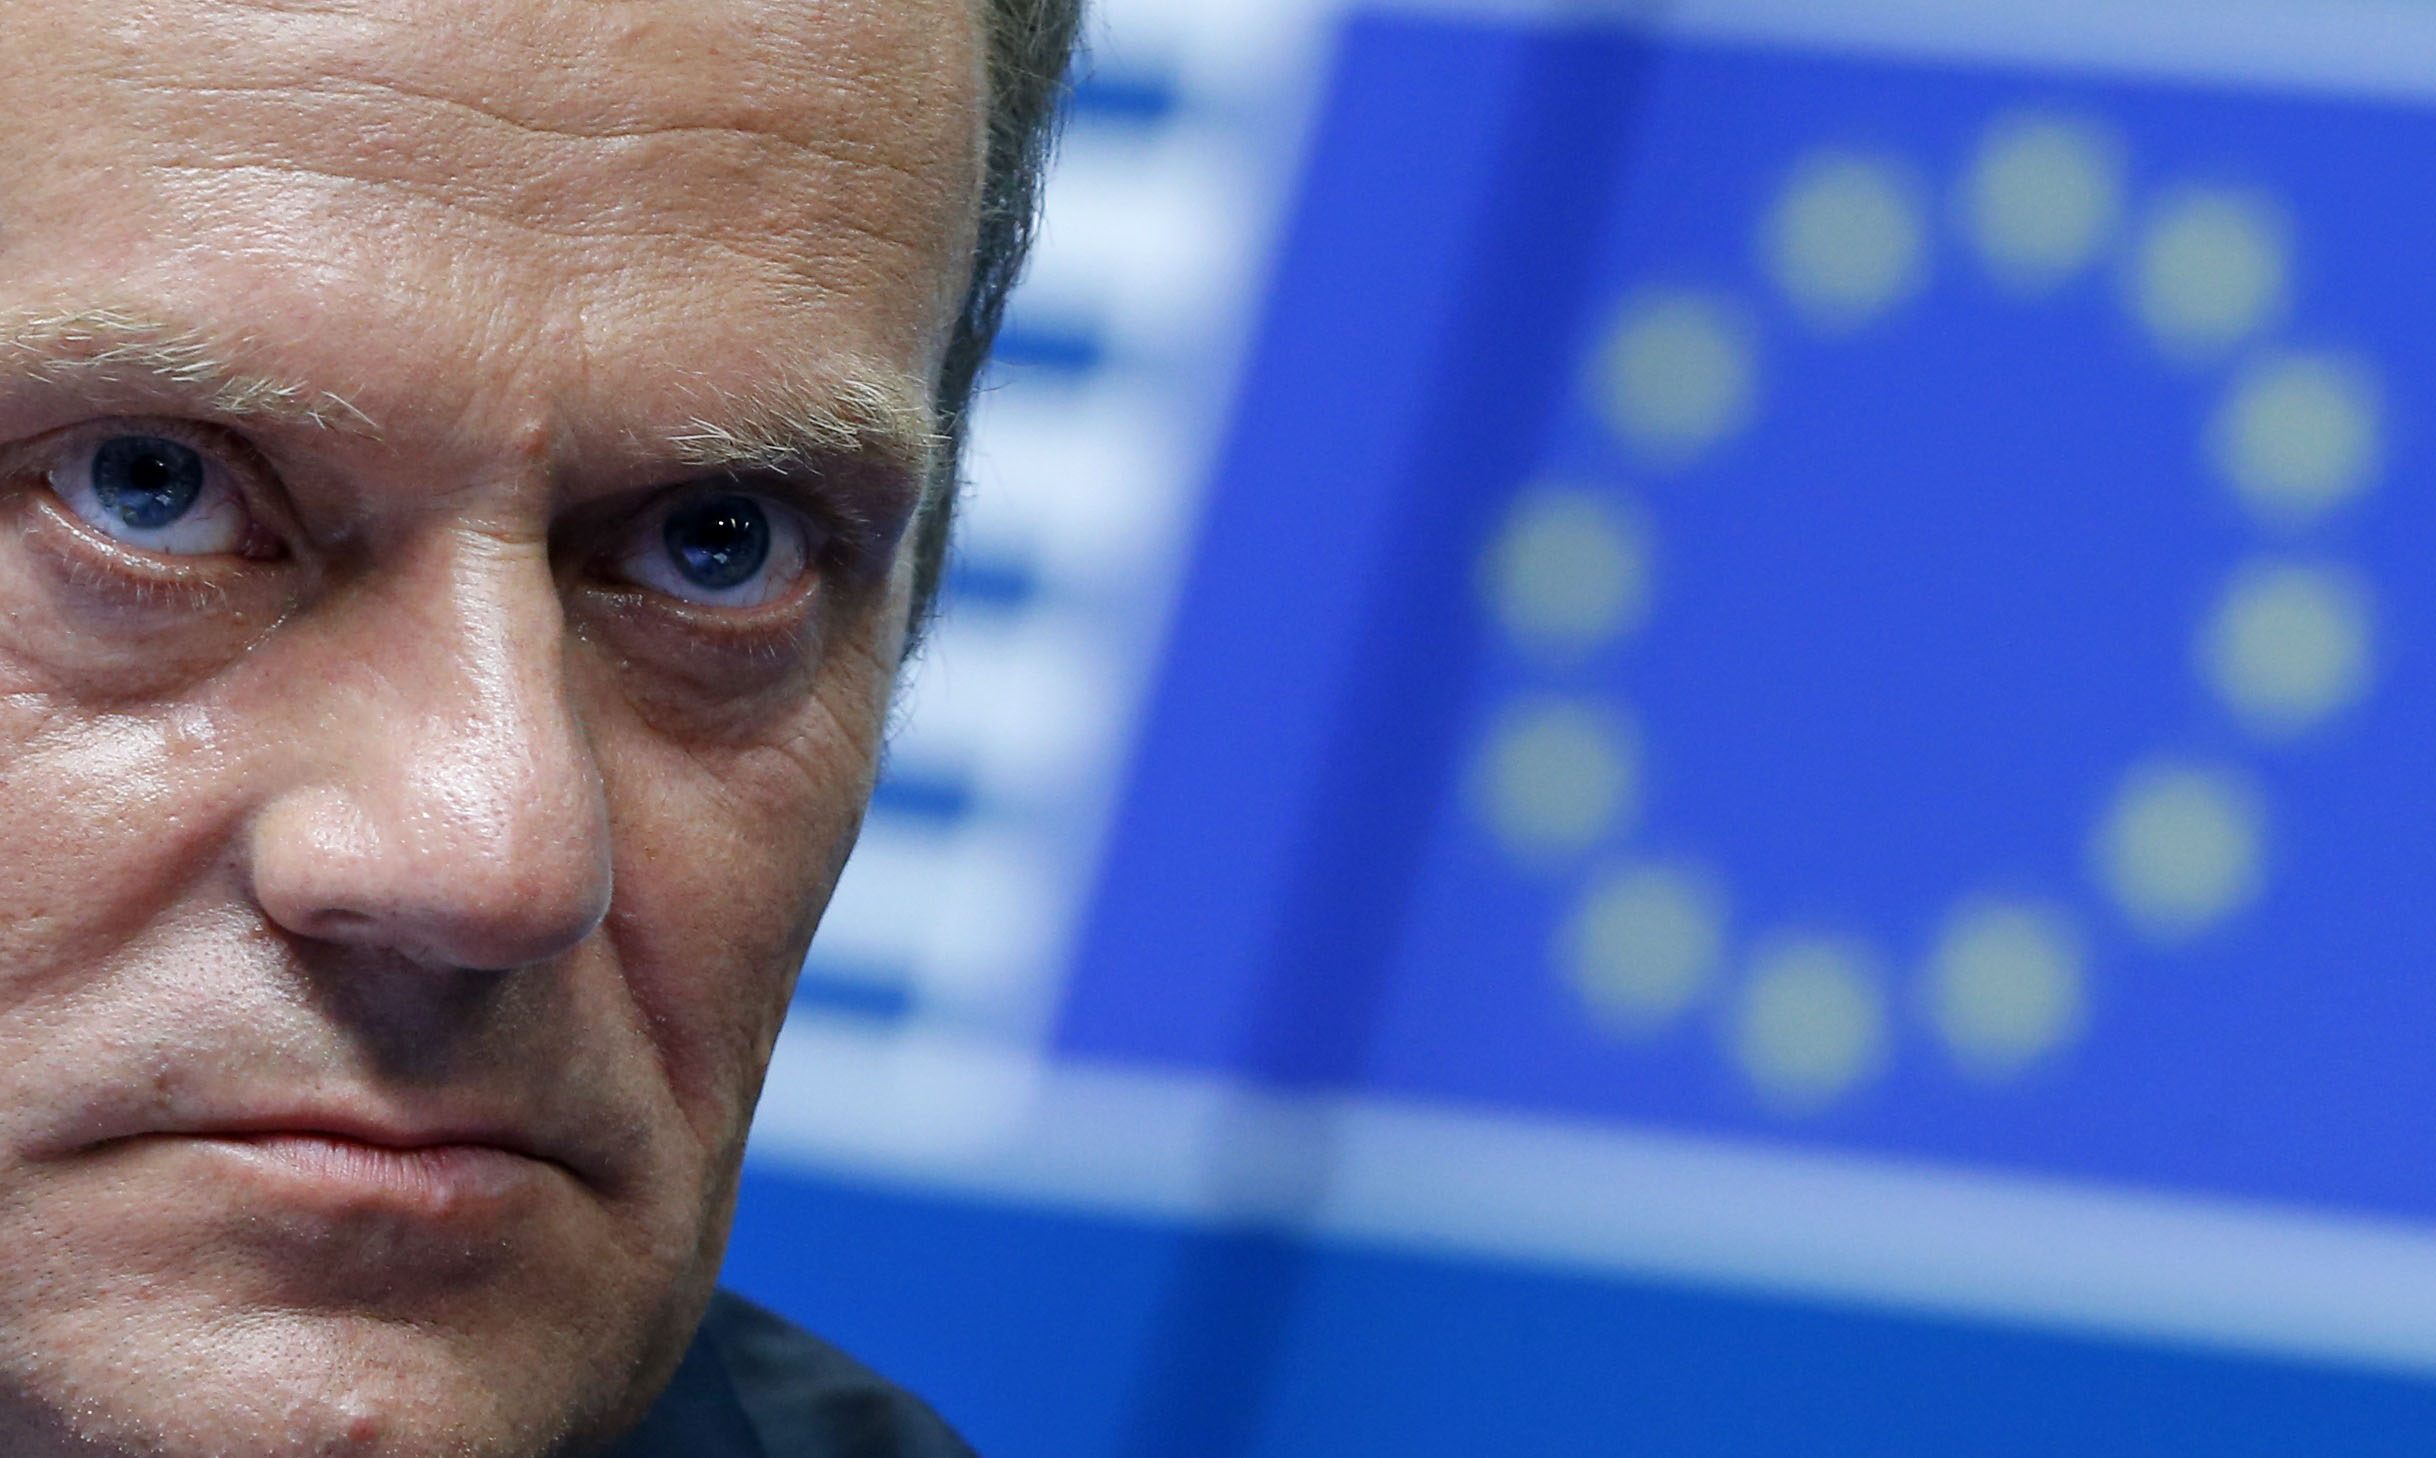 Newly elected European Council President Donald Tusk attends a news conference during an EU summit in Brussels August 30, 2014. European Union leaders chose Polish Prime Minister Tusk as the new president of their Council on Saturday and Italian Foreign Minister Federica Mogherini as the bloc's new foreign policy chief, outgoing European Council President Herman Van Rompuy said. REUTERS/Yves Herman (BELGIUM - Tags: POLITICS)